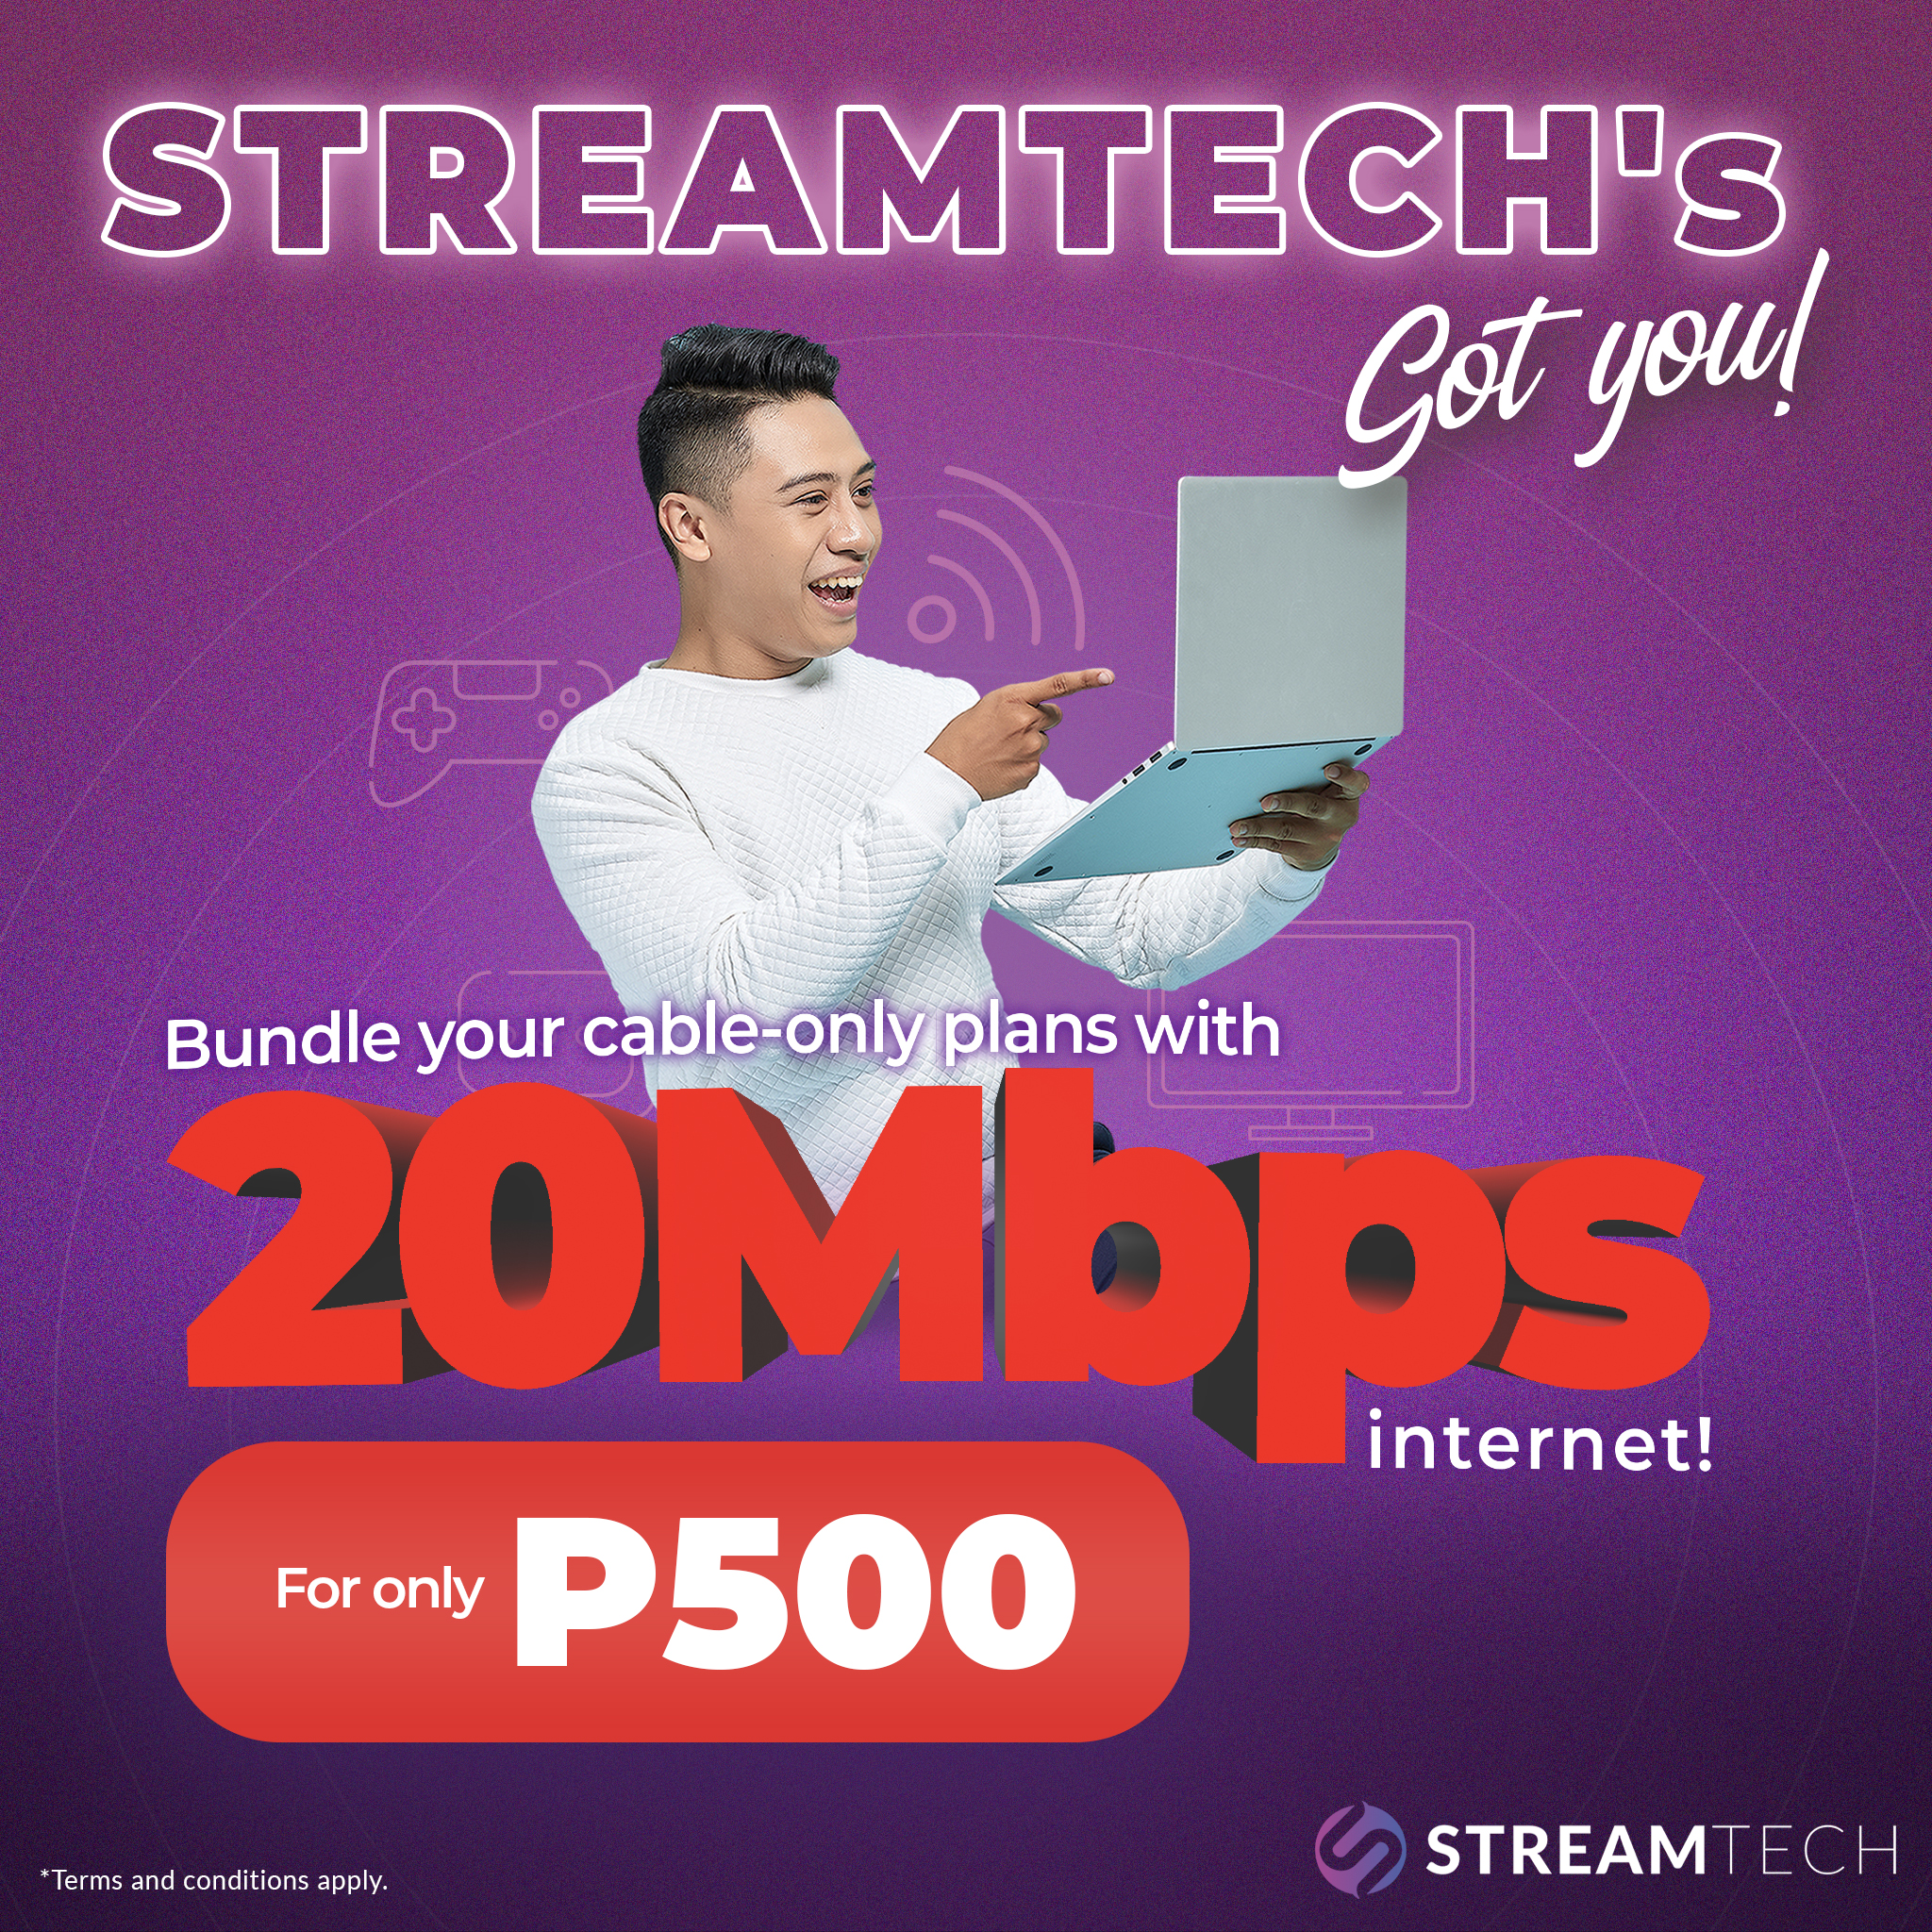 For only PhP 500, You'll Get 20 Mbps of Fiber Internet with Streamtech